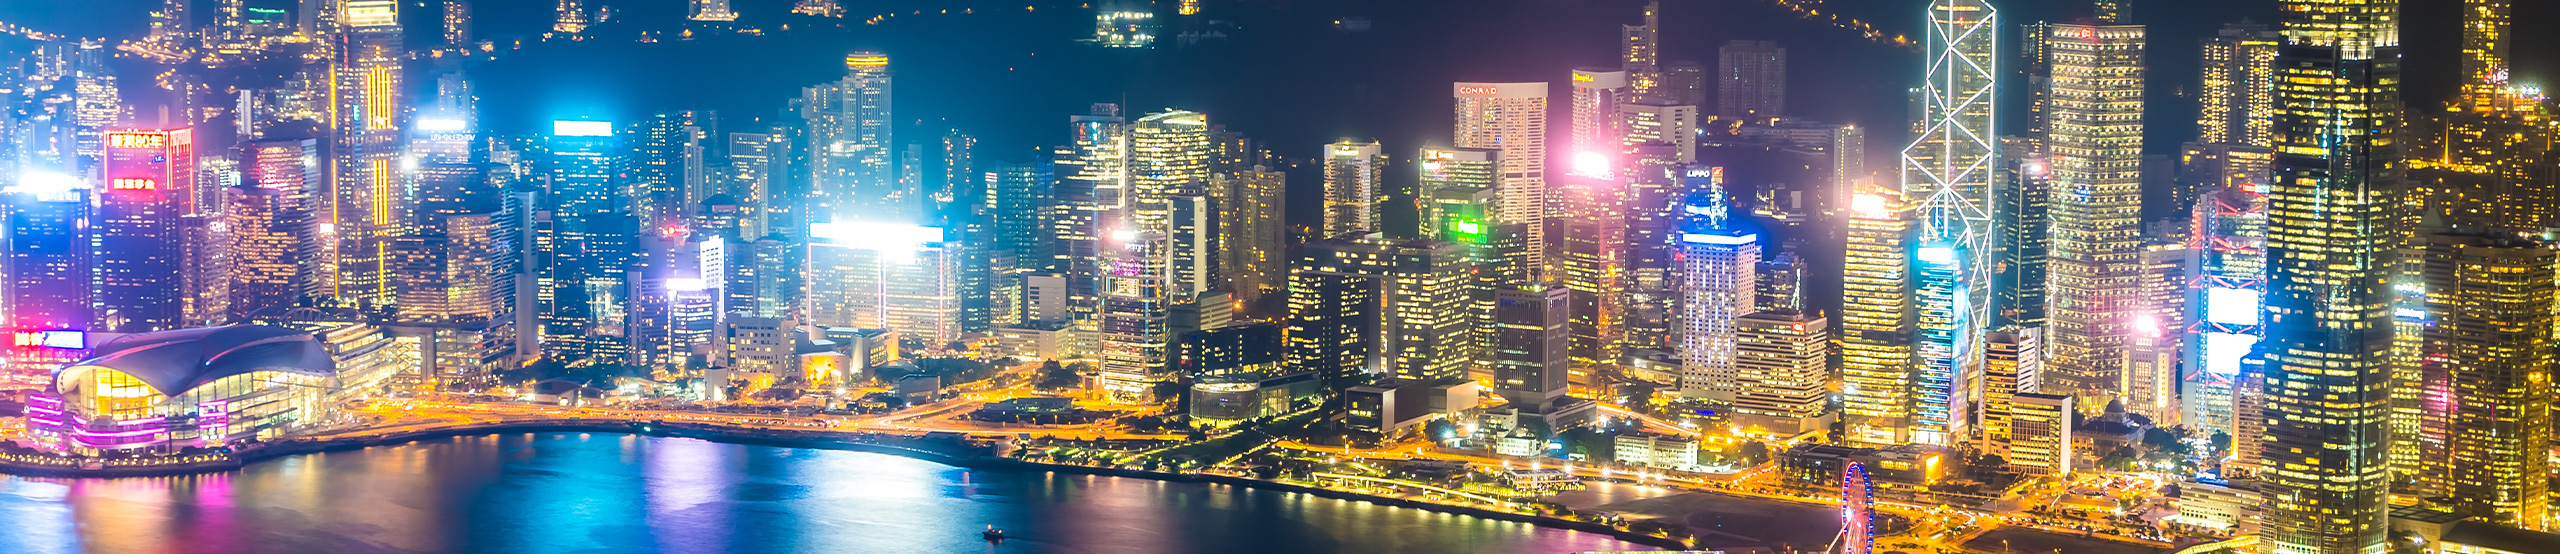 Hong Kong City | Naples Global Advisors, SEC Registered Investment Advisor